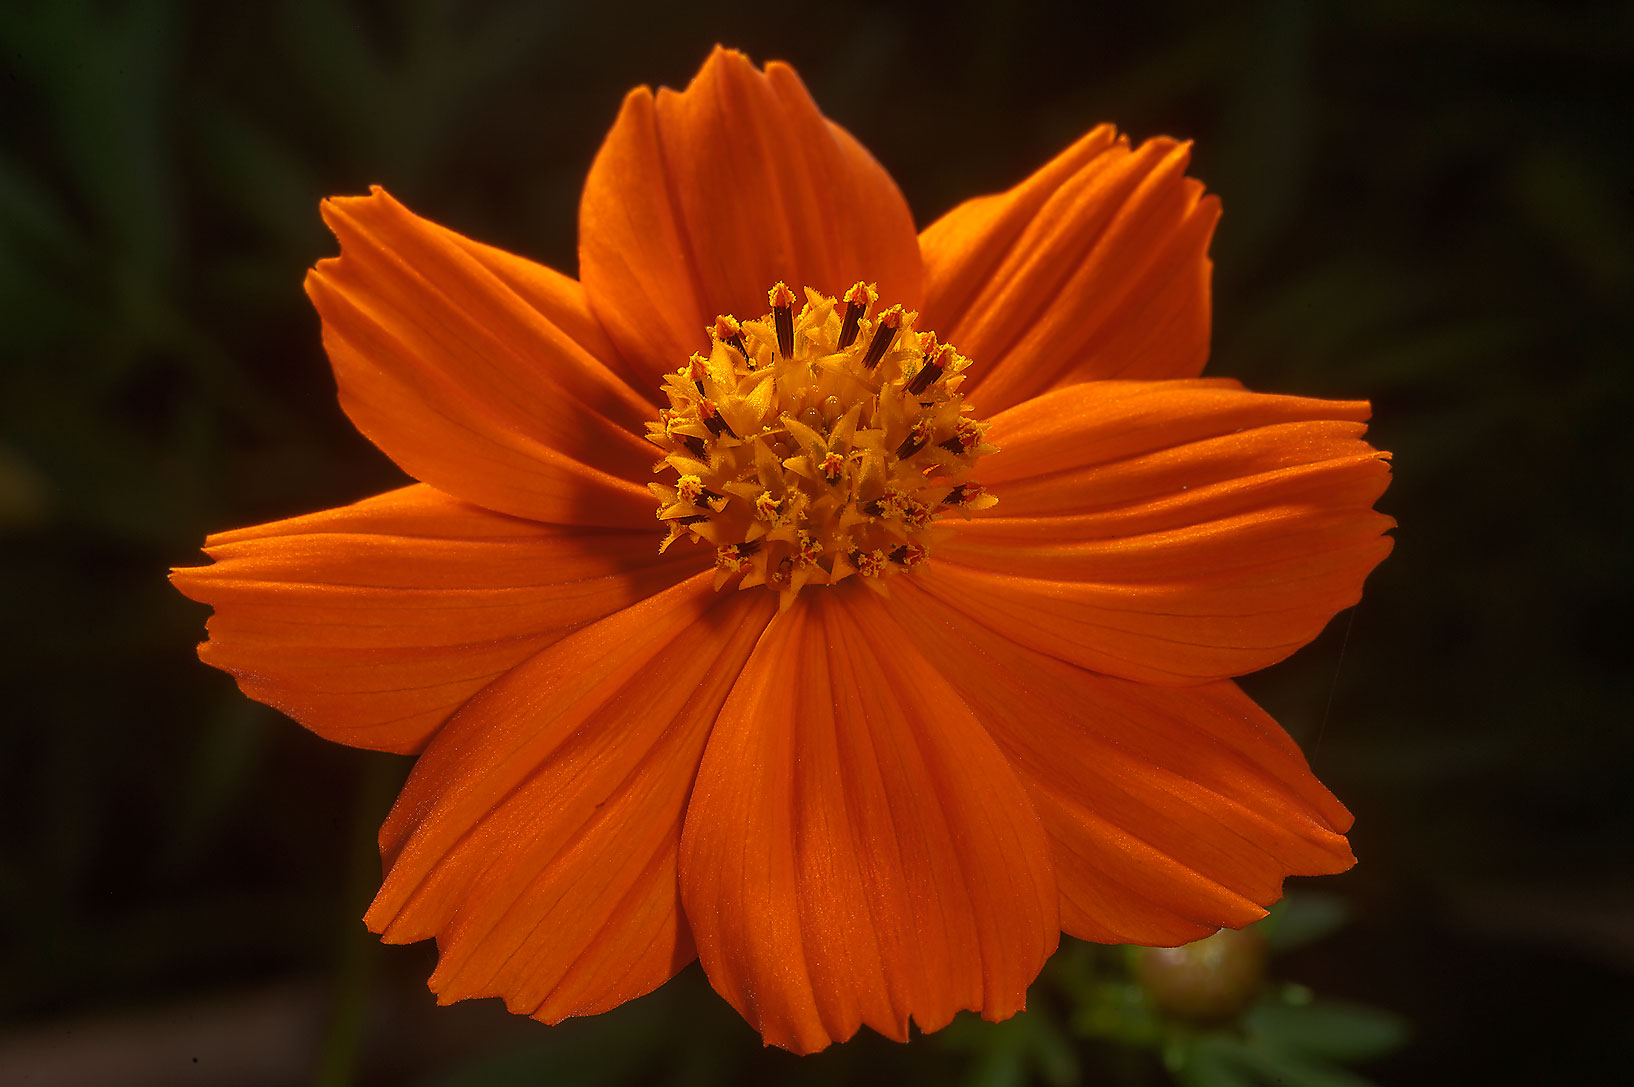 Orange flower of coreopsis in Mercer Arboretum...Gardens. Humble (Houston area), Texas